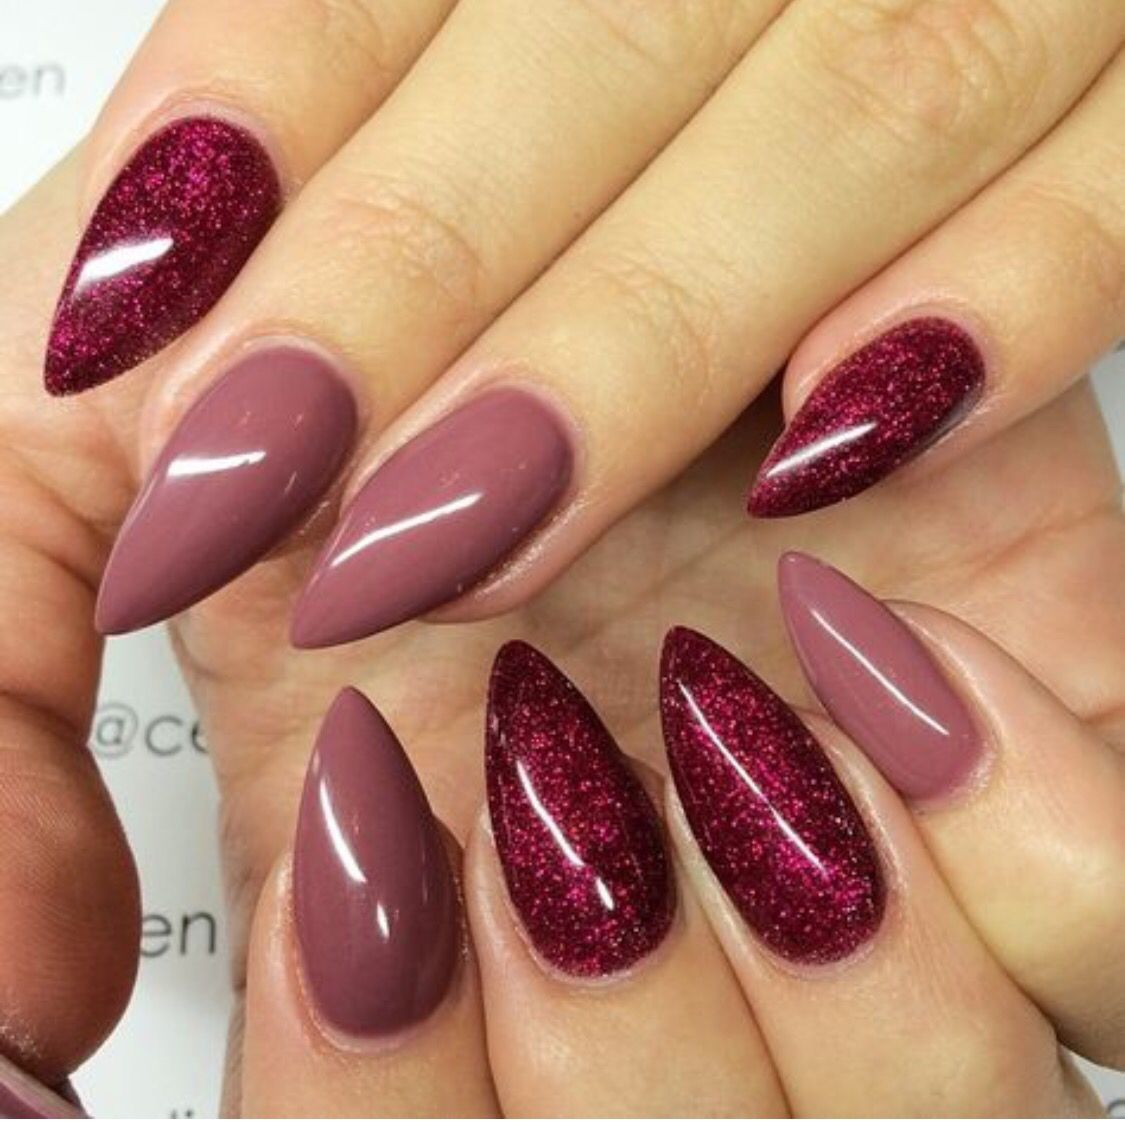 Mauve and maroon nails pinterest mauve nails nail art and manicure image on we heart it prinsesfo Image collections